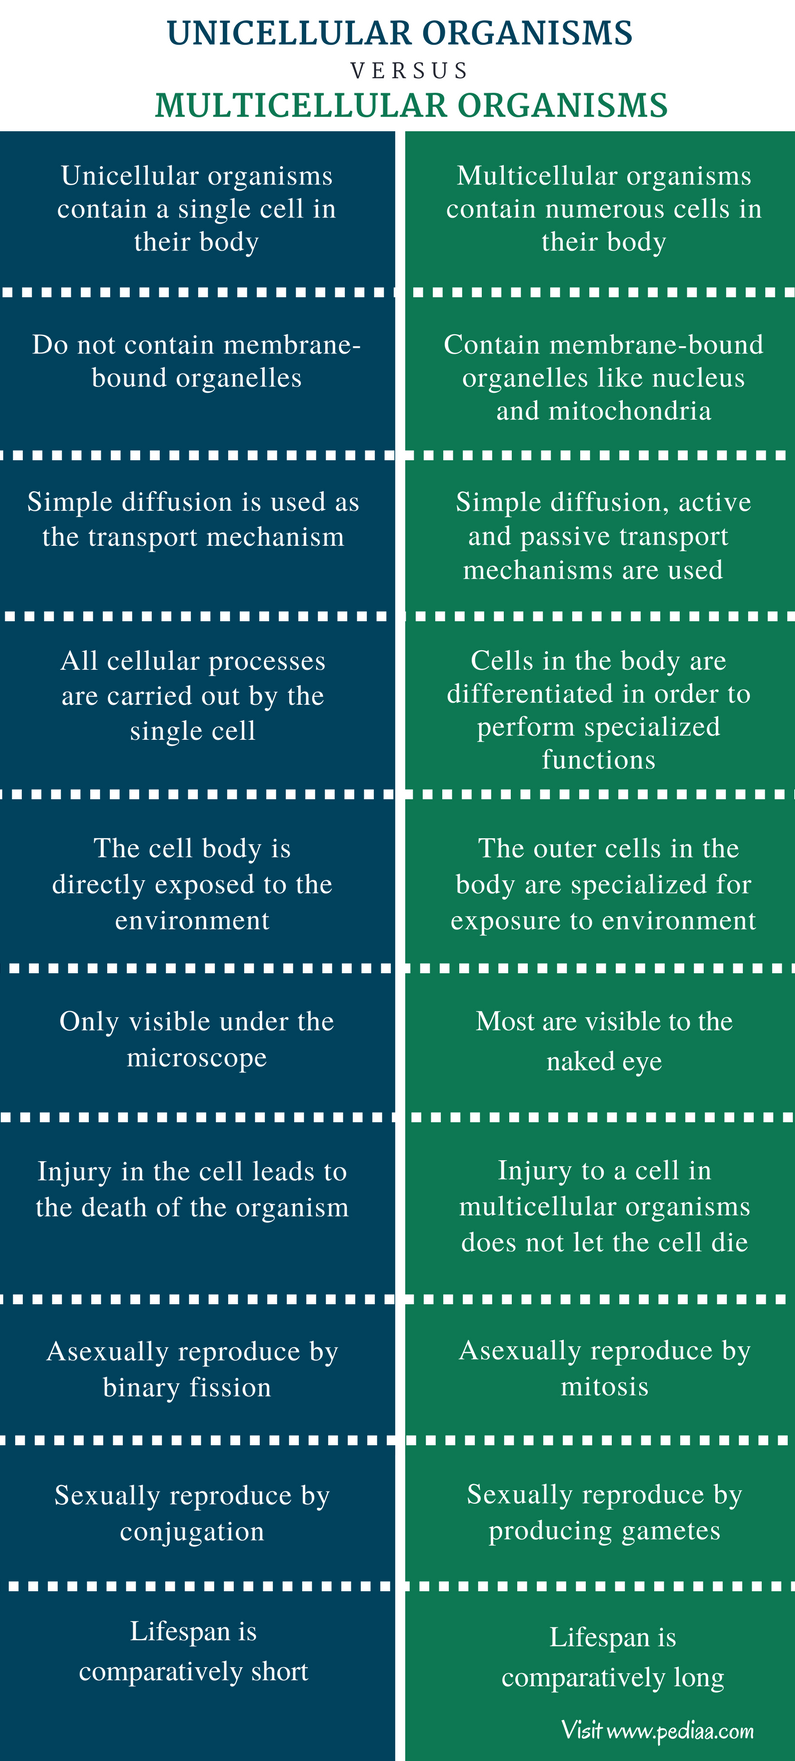 Difference Between Unicellular And Multicellular Organisms